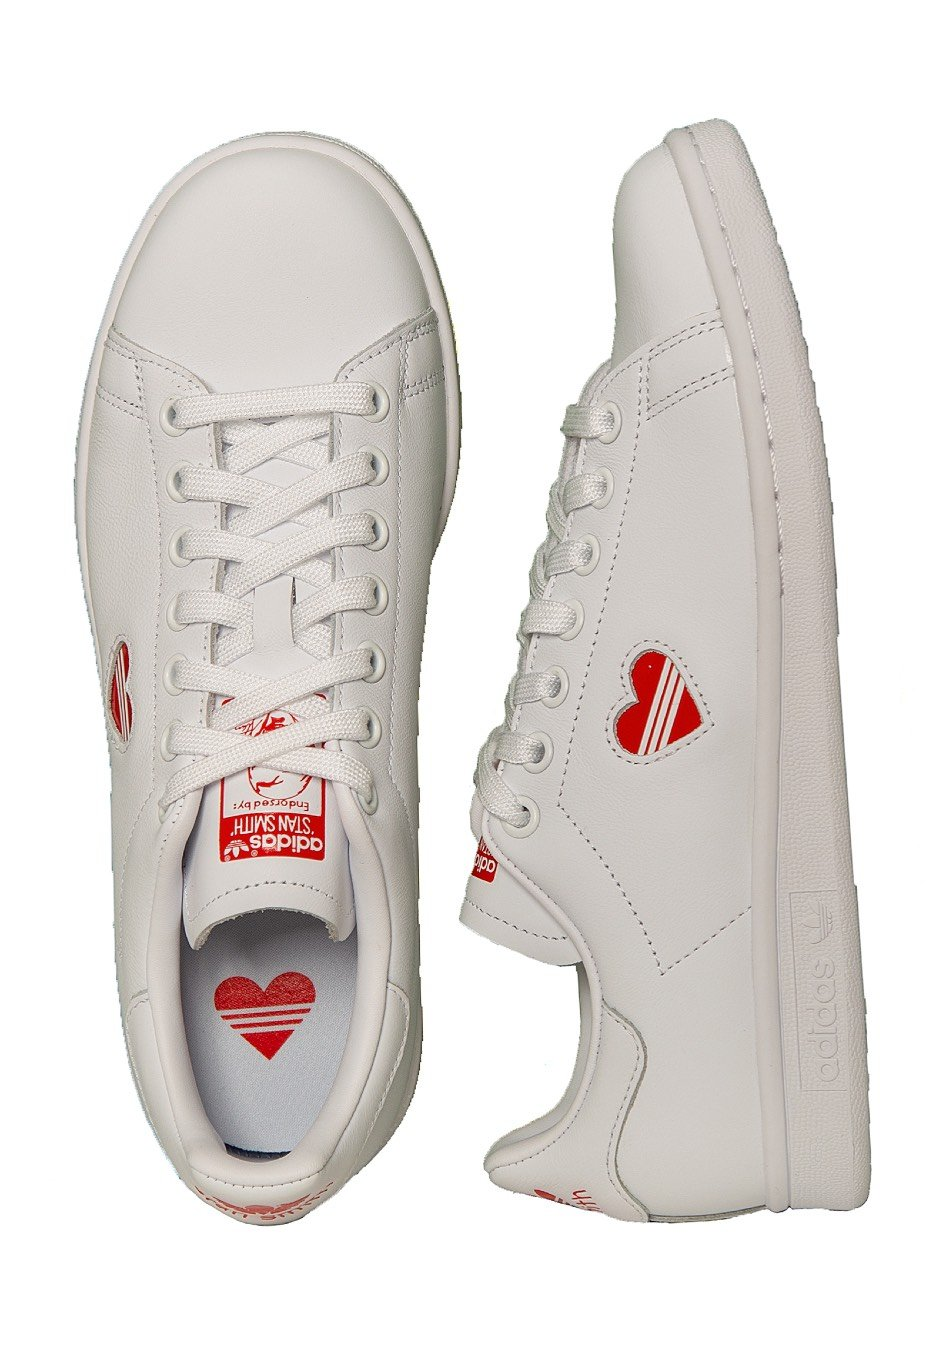 new concept 3c918 0e016 Adidas - Stan Smith W Ftwr White/Act Red/Ftwr White - Girl Shoes